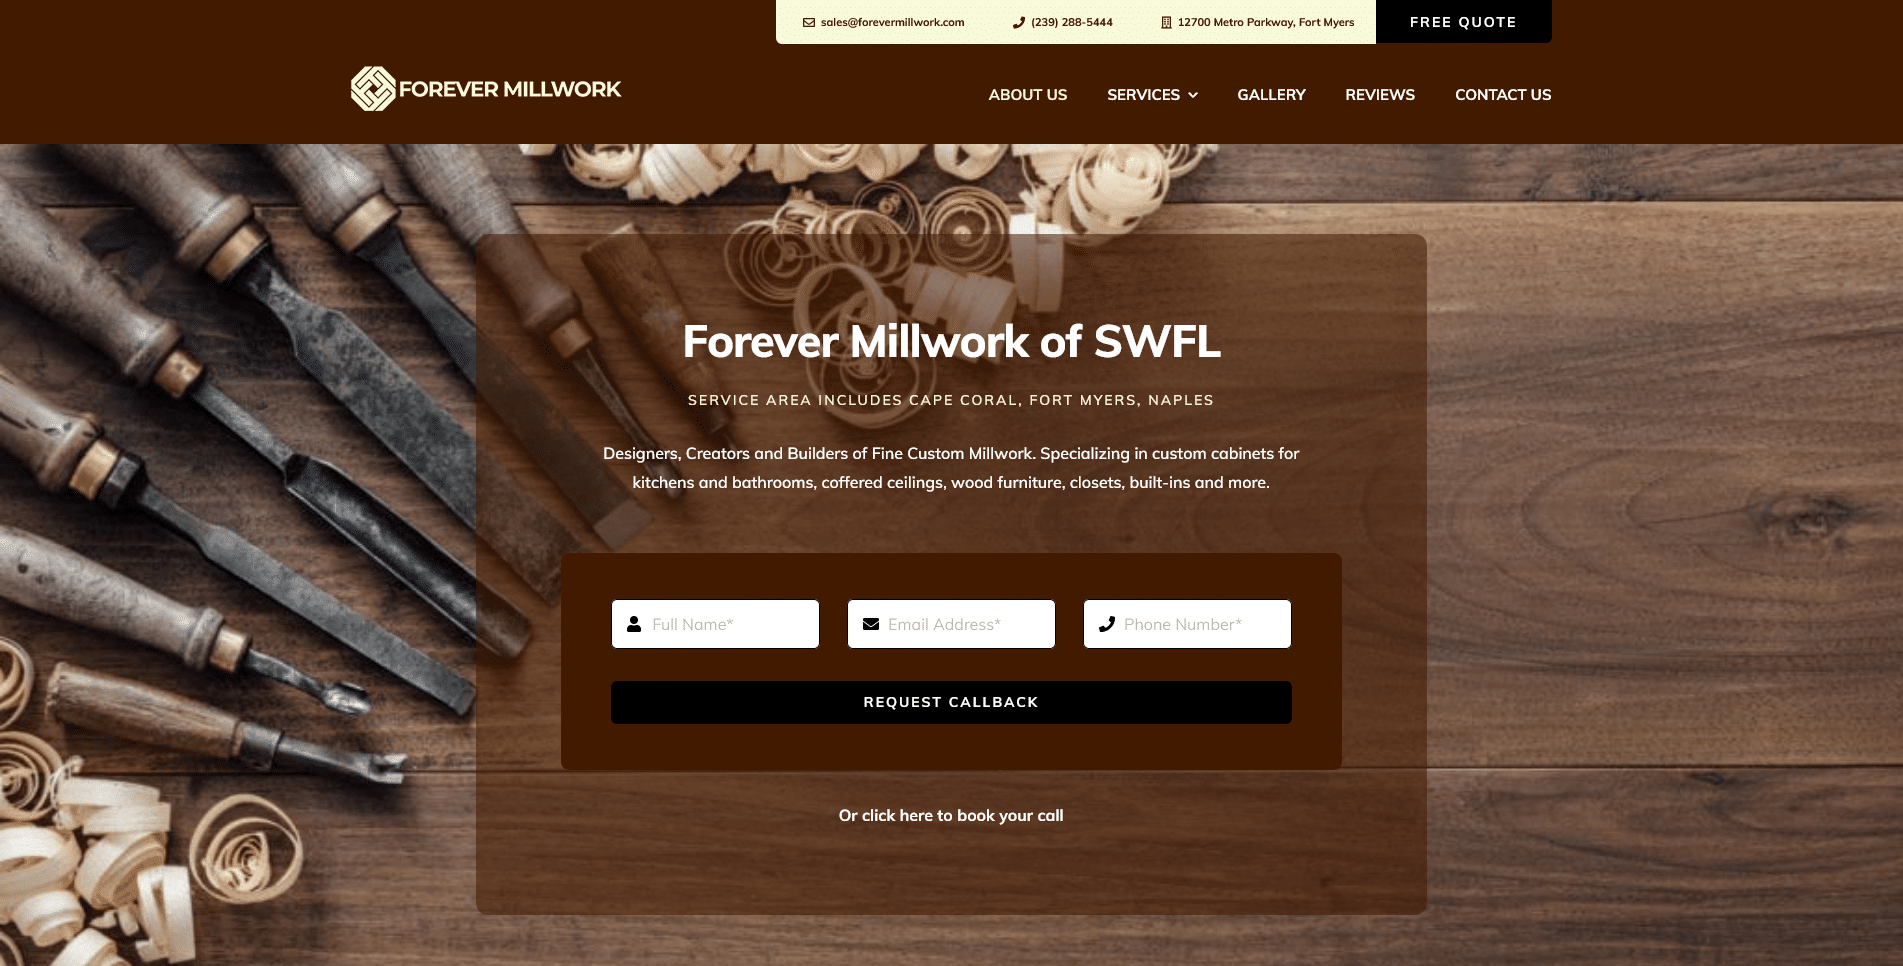 Forever Millwork of SWFL